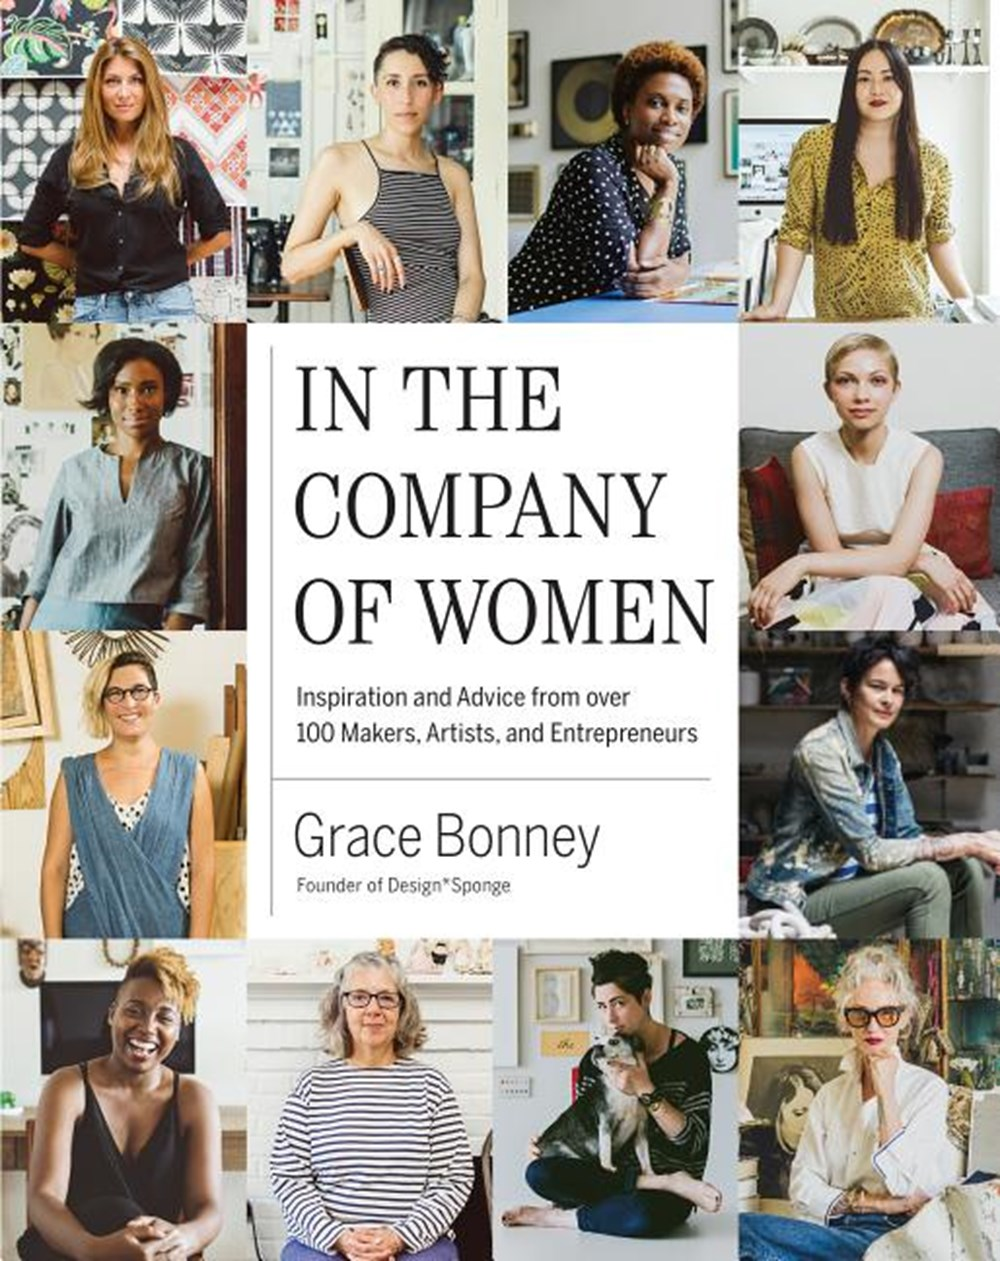 In the Company of Women Inspiration and Advice from Over 100 Makers, Artists, and Entrepreneurs